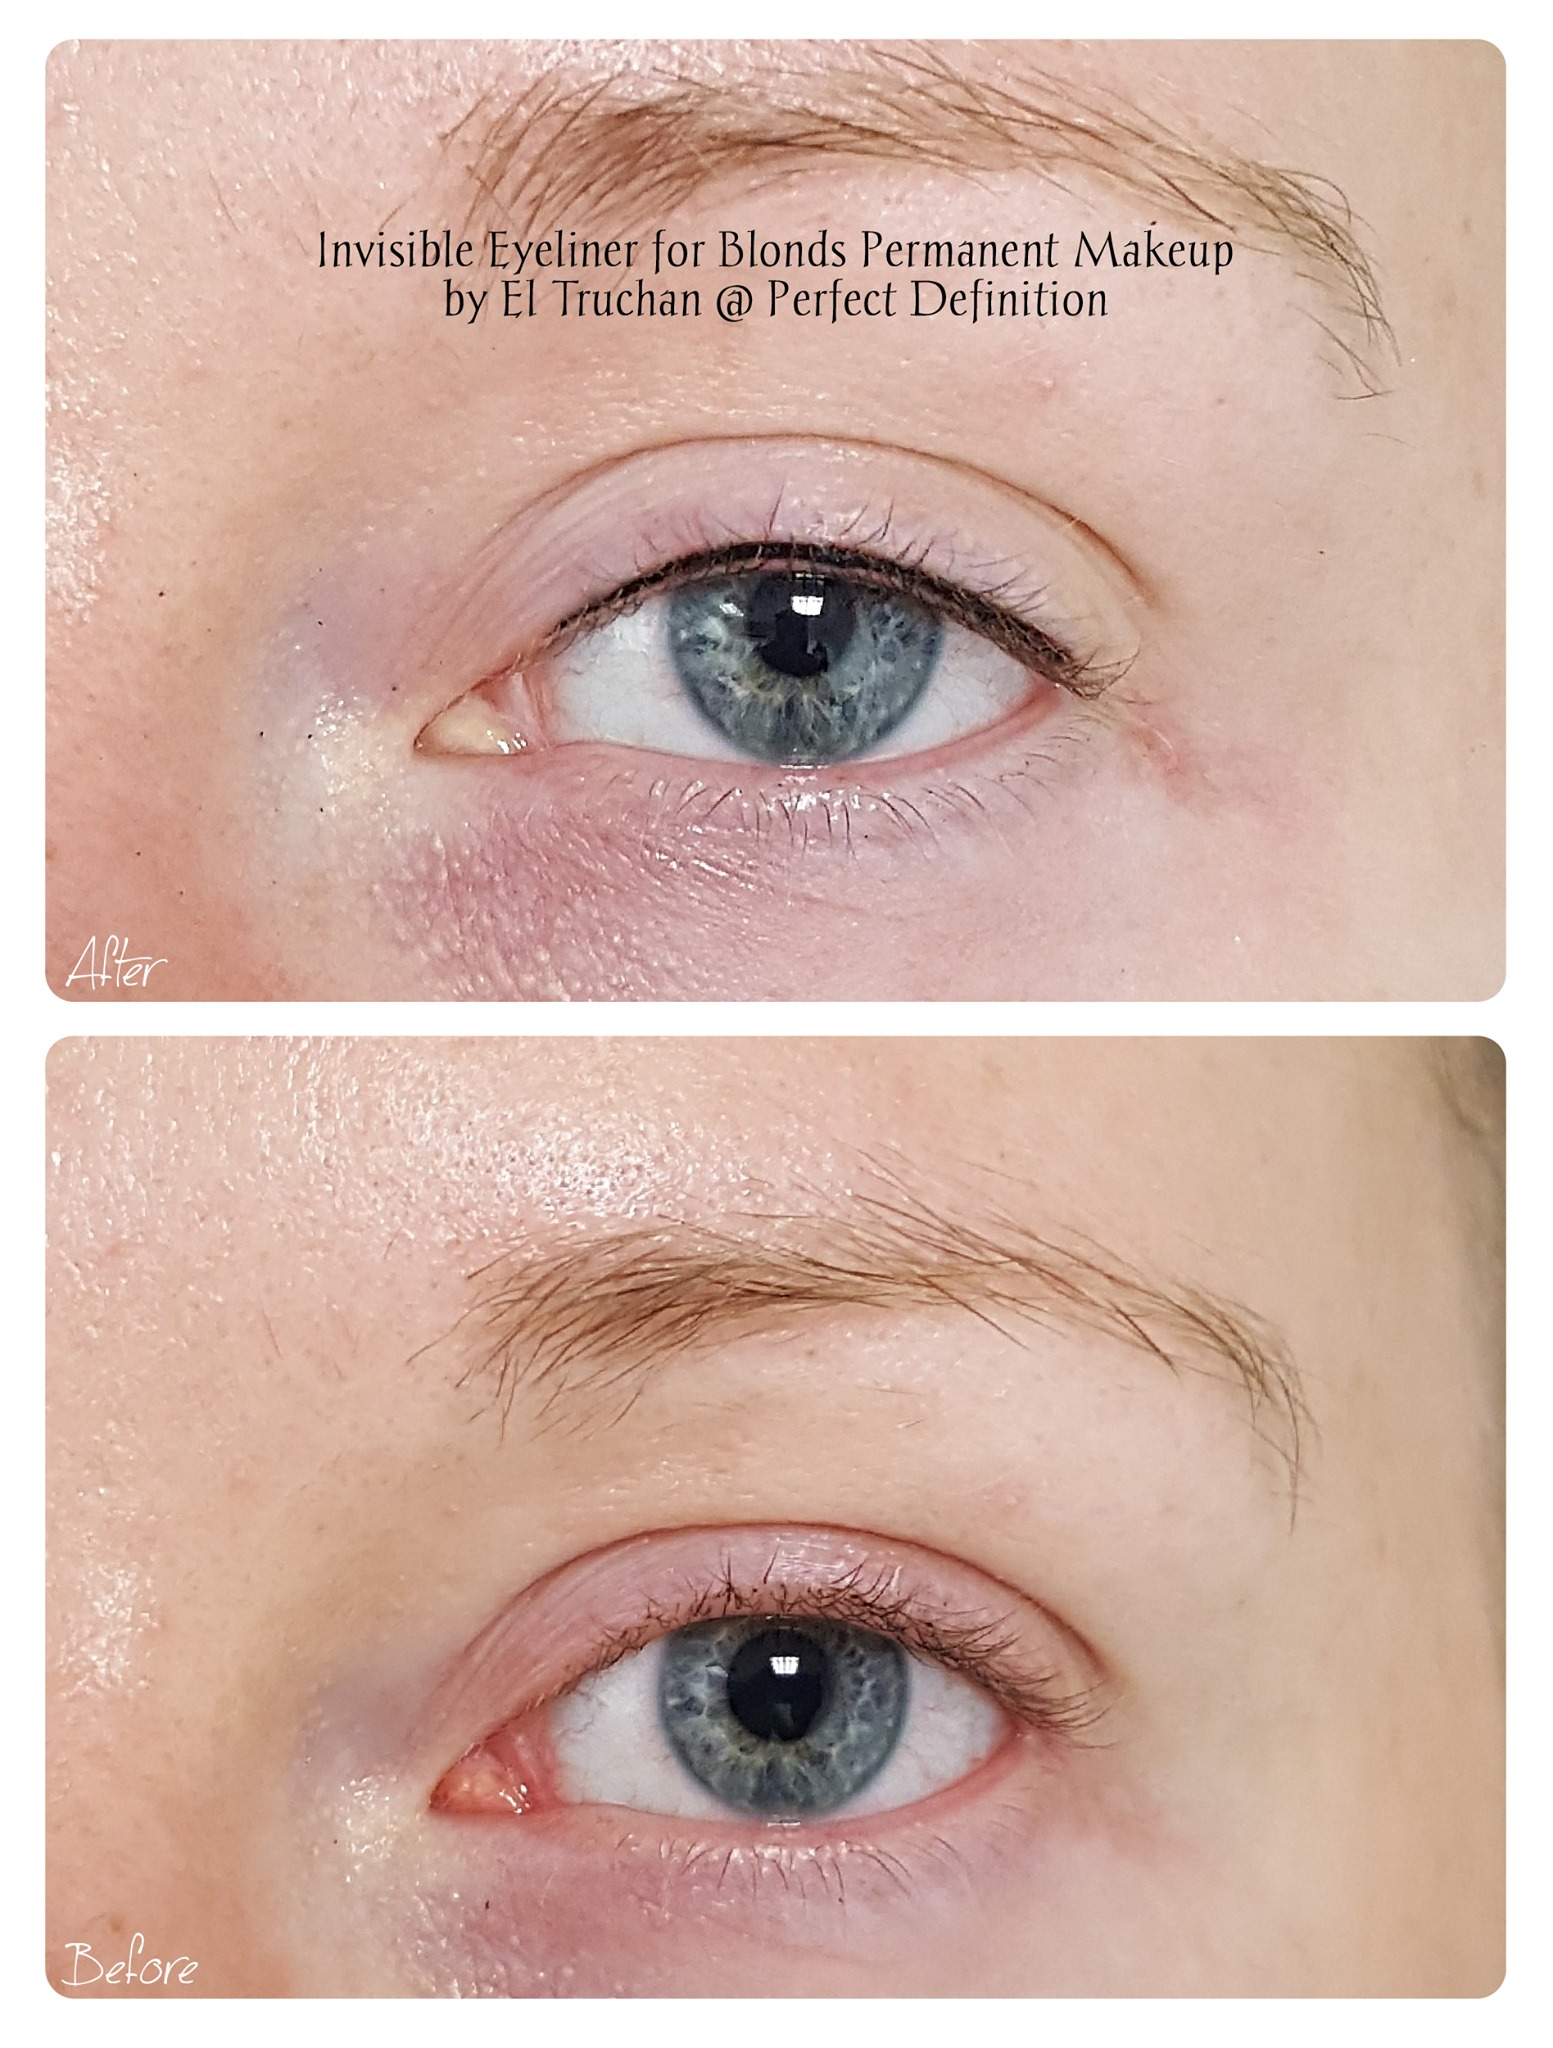 Invisible Eyeliner for Blondes Permanent